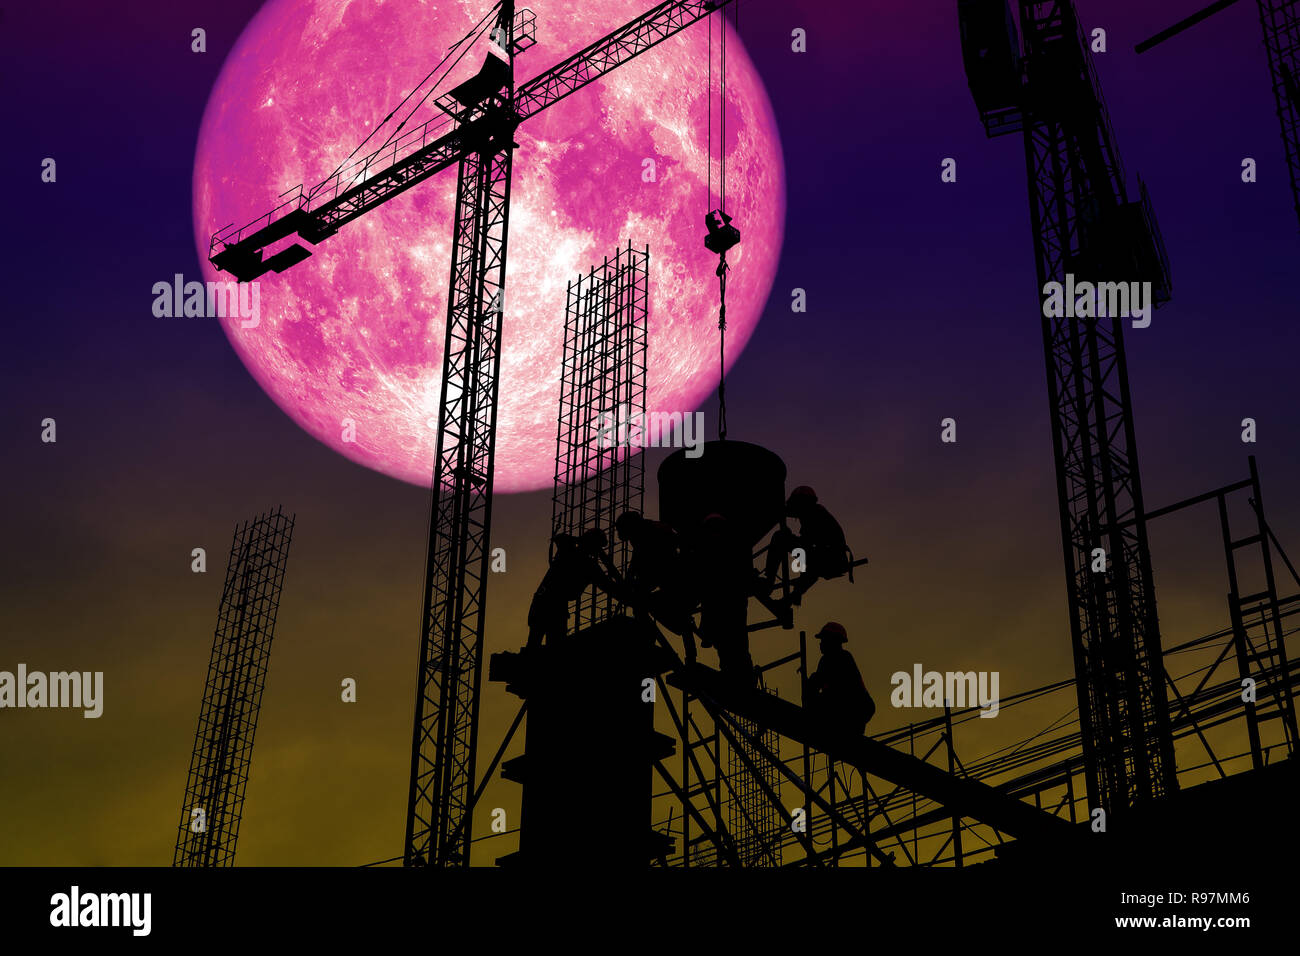 full pink moon back silhouette worker on construction building, Elements of this image furnished by NASA - Stock Image